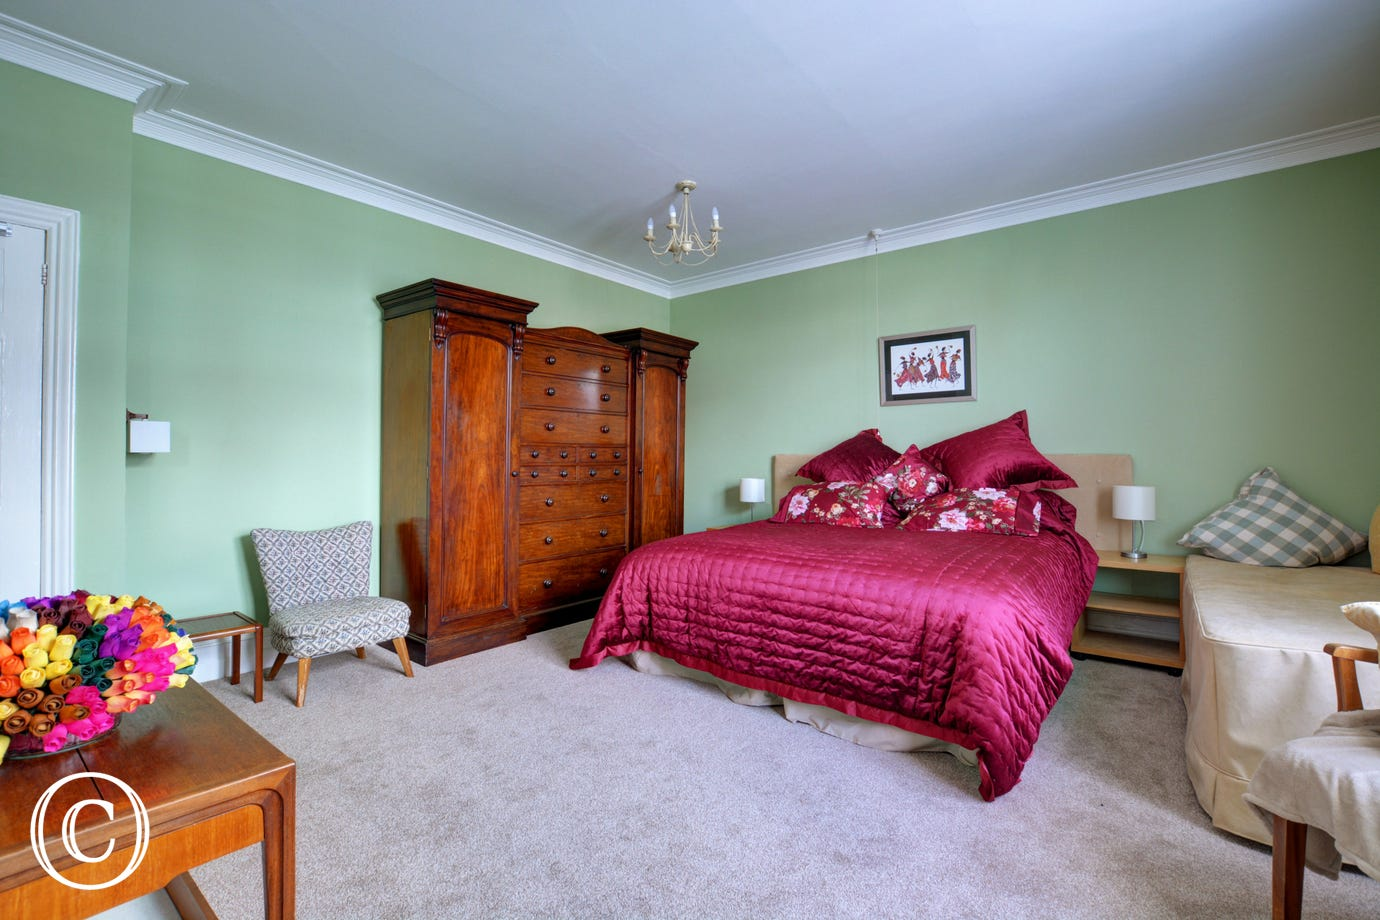 Bedroom 2 with  6' zip & link bed which can be converted into twin beds on request.